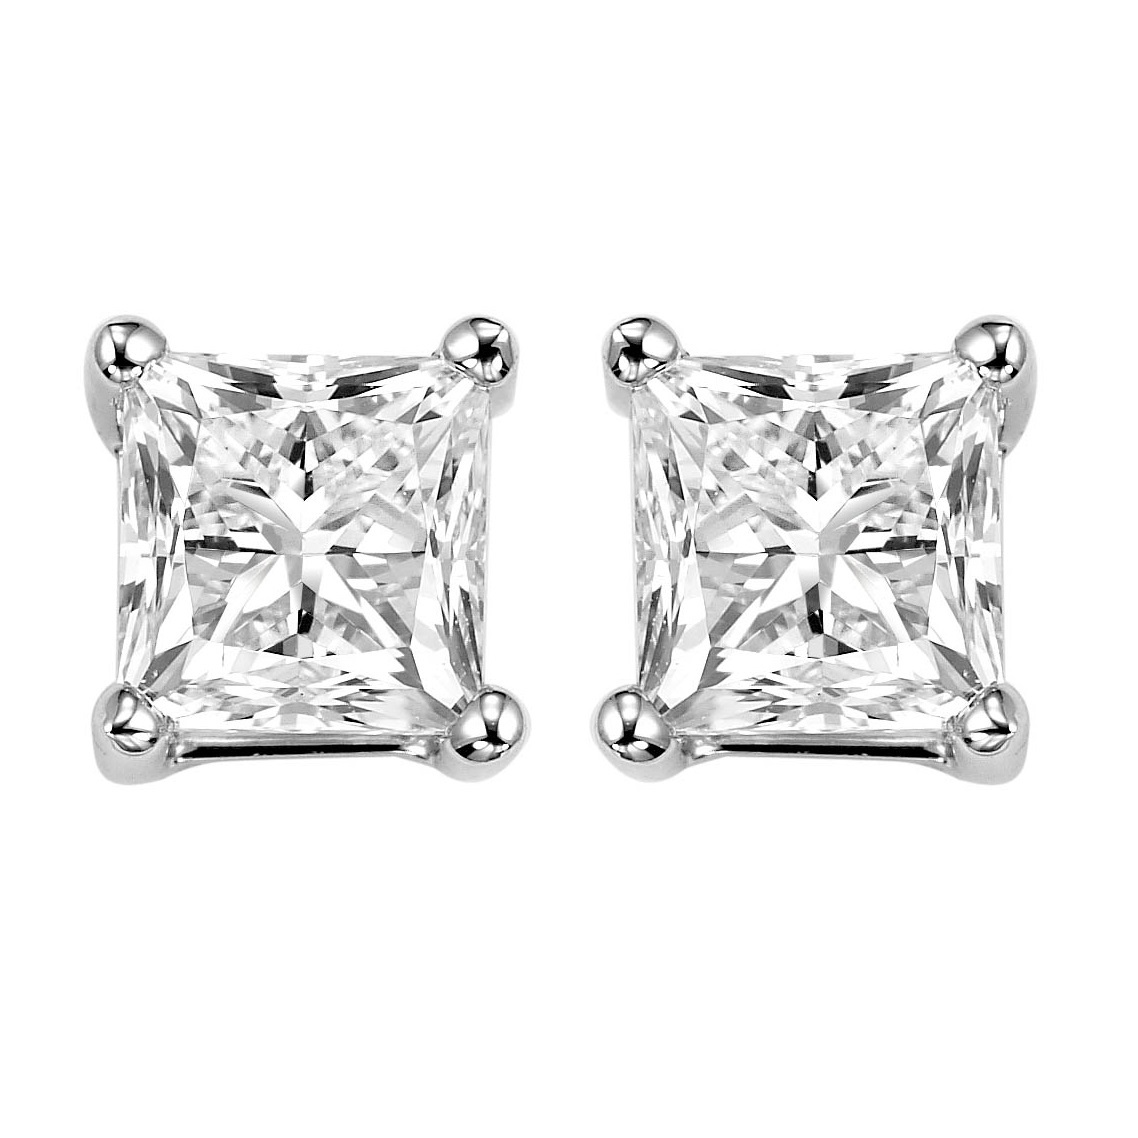 Princess Cut Diamond Studs in 14K White Gold (1 1/2 ct. tw.) I1 - G/H Moseley Diamond Showcase Inc Columbia, SC